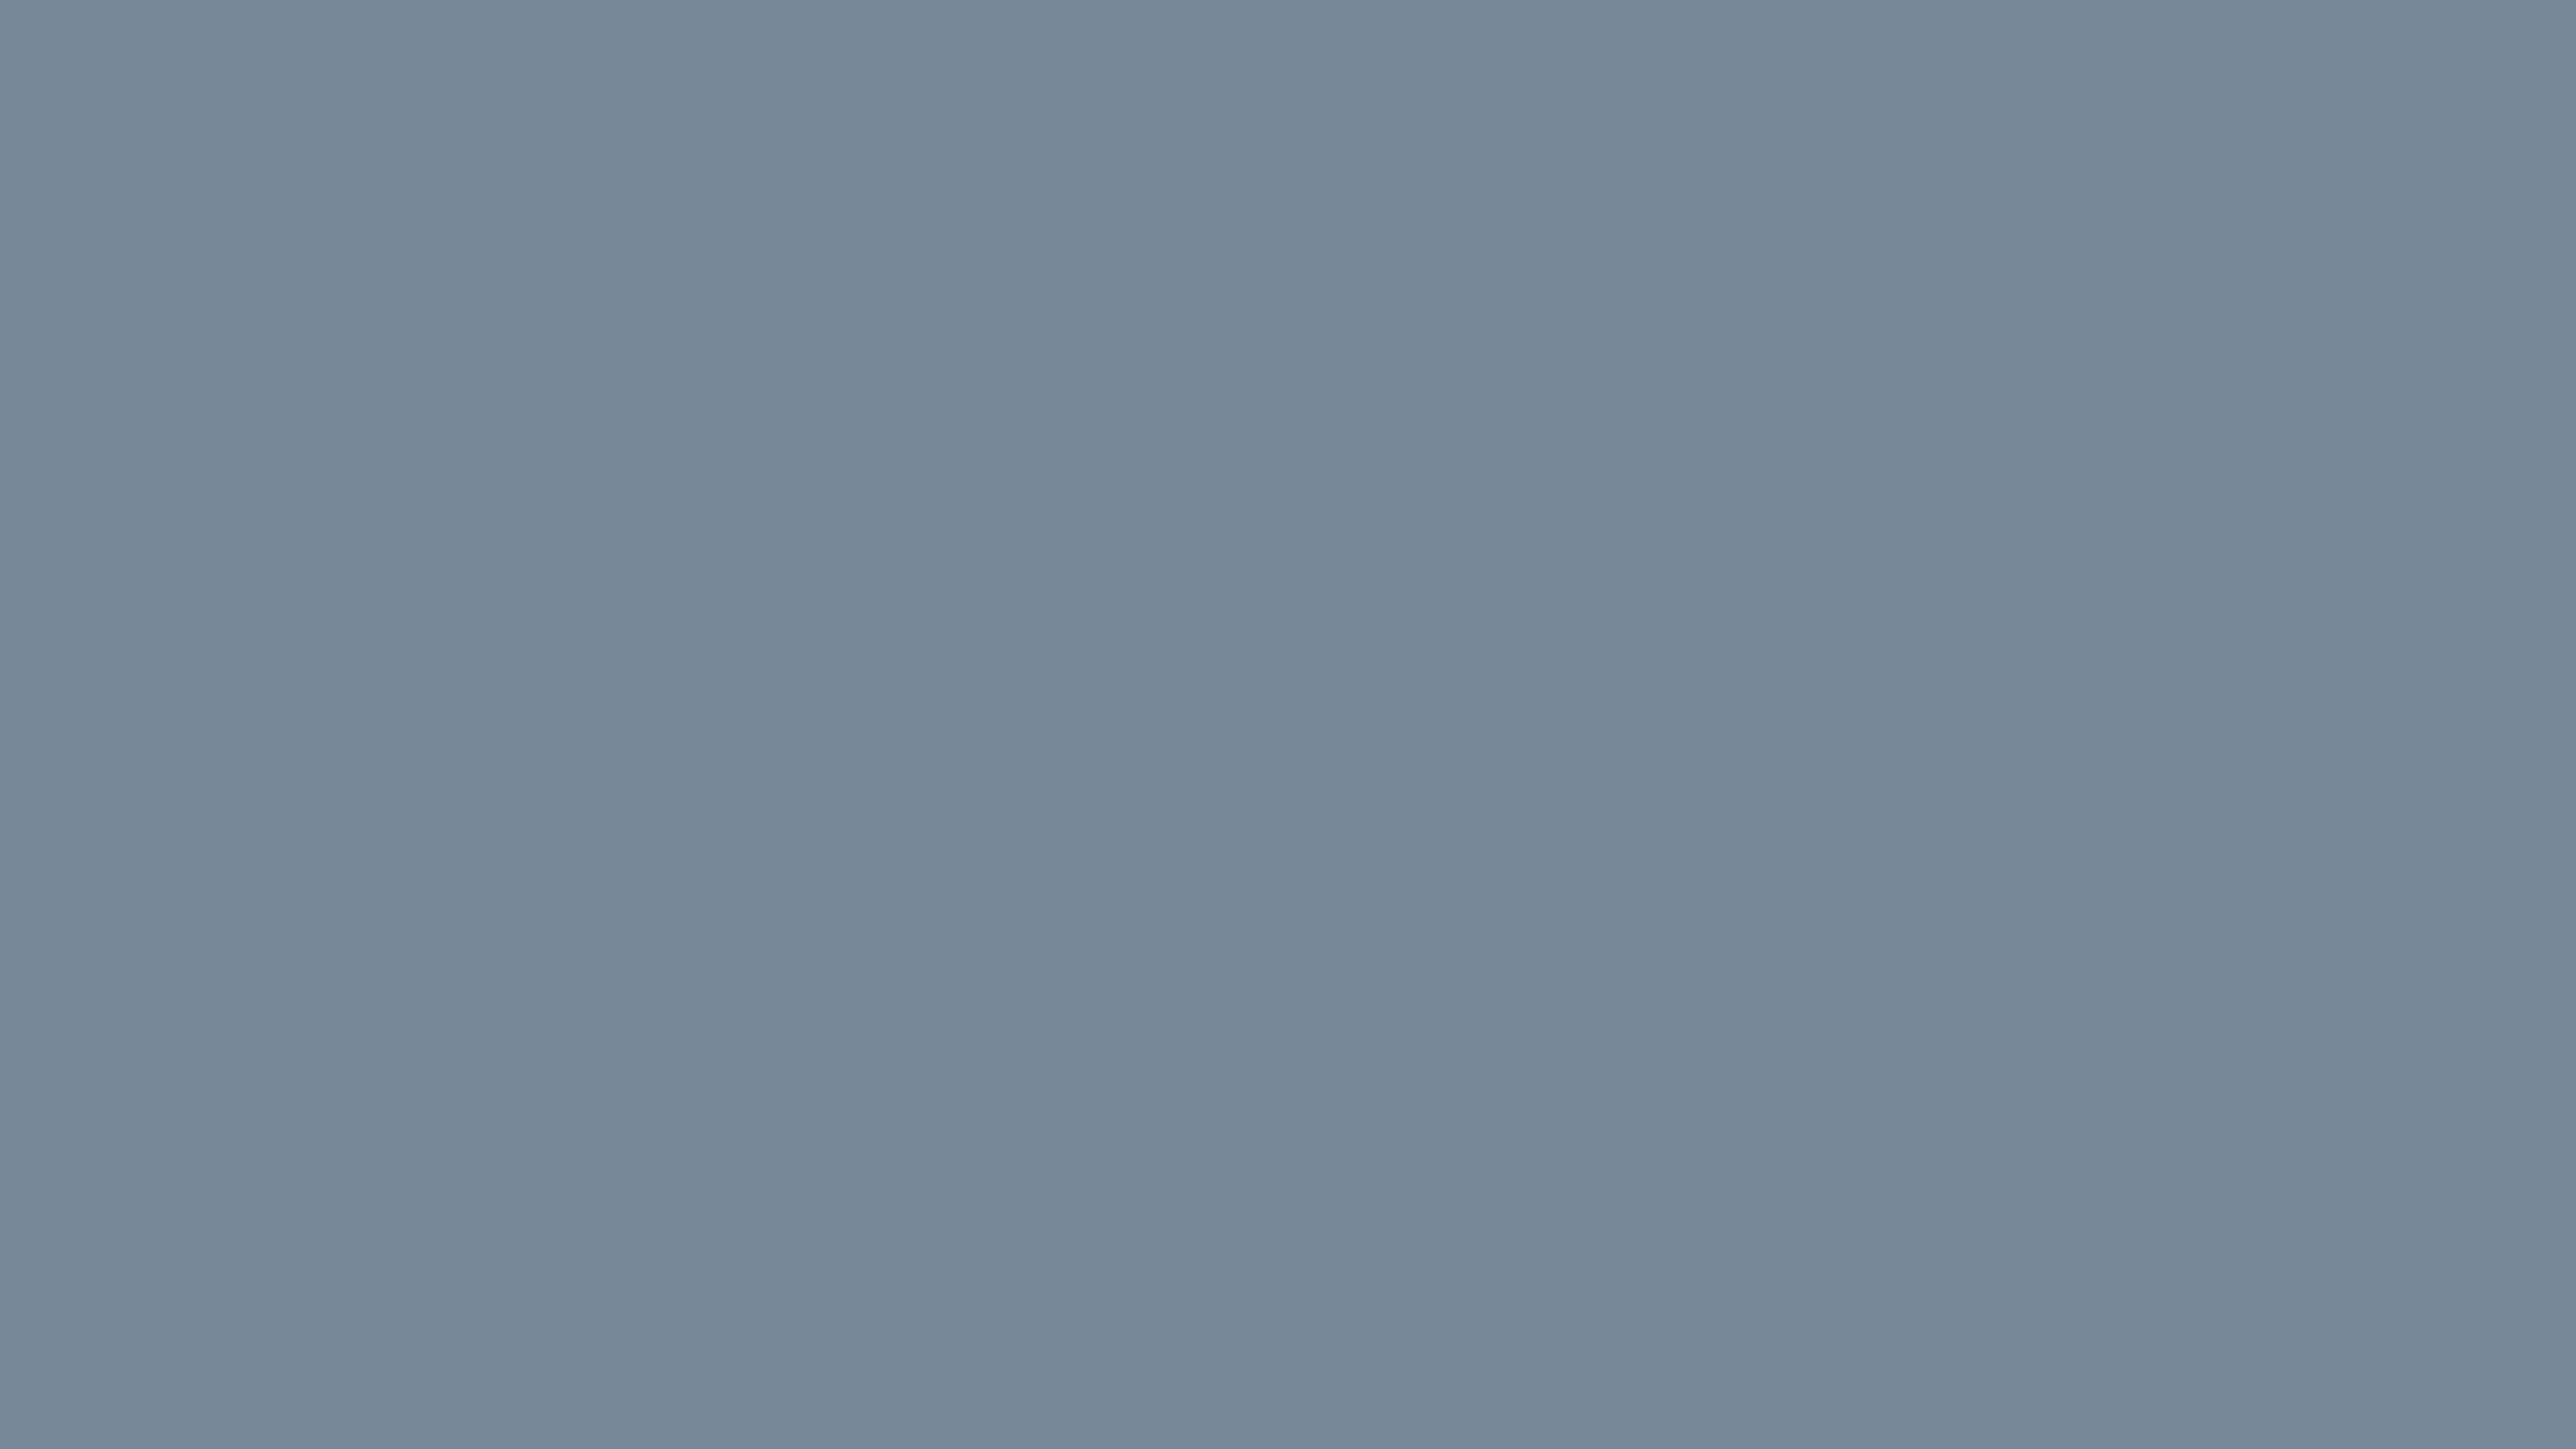 3840x2160 Light Slate Gray Solid Color Background